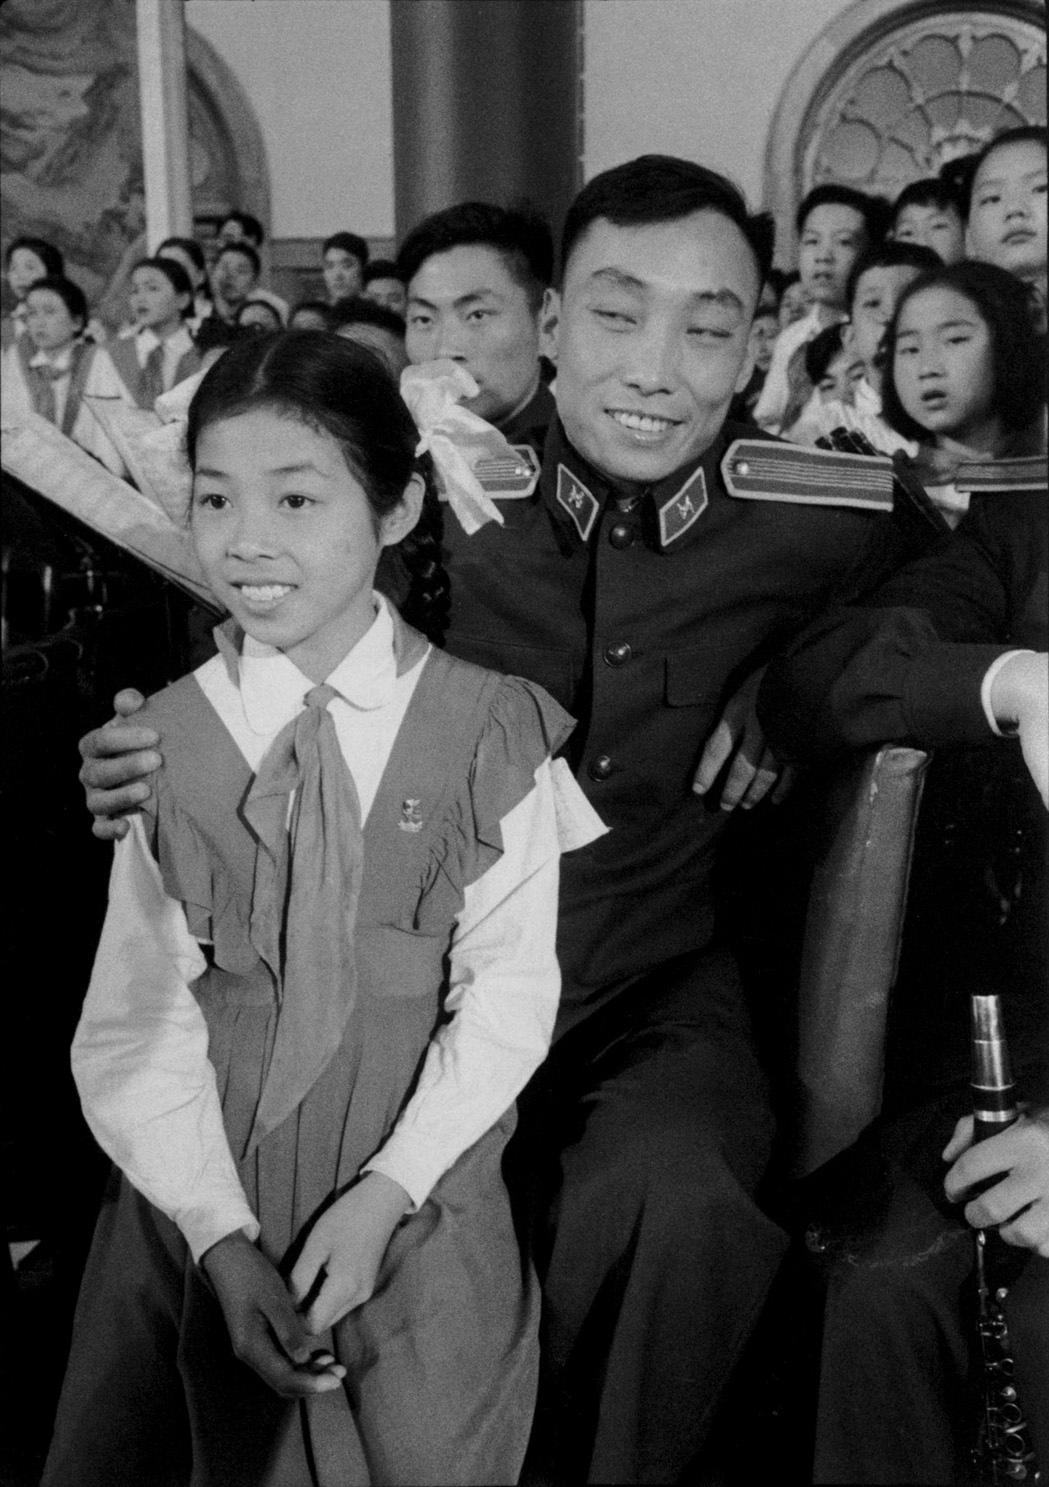 A man and his daughter at the International Children's Day celebration held in the Peking Hotel, Peking. China, 1 June 1956. (RDH C021-30)